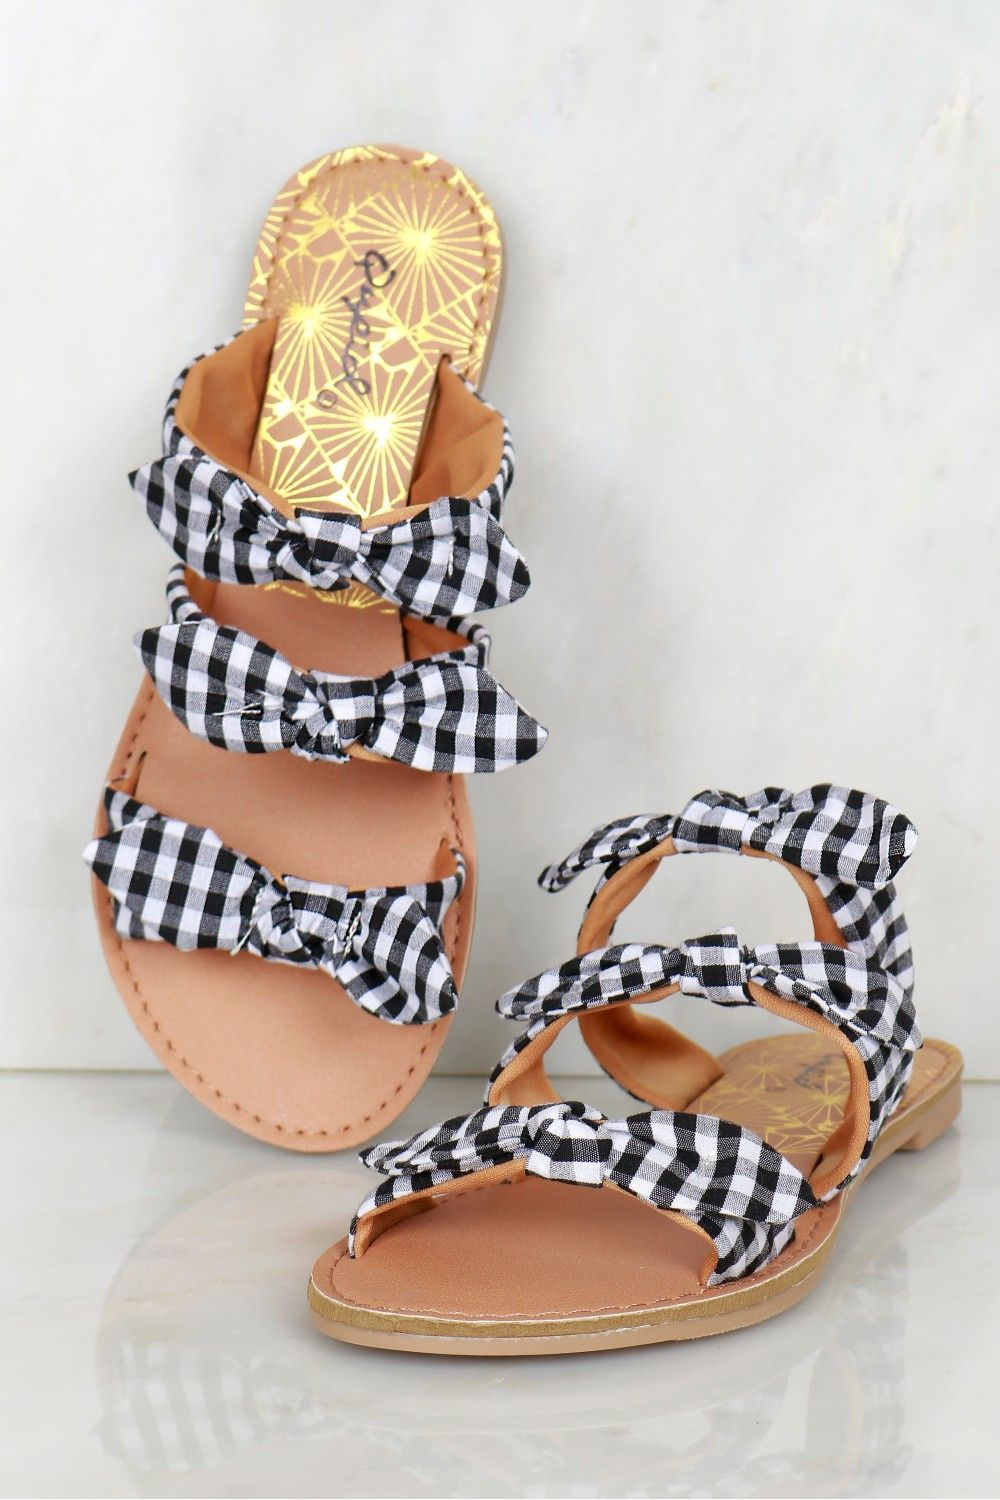 42f6ffe088 Triple Bow Gingham Slip On Sandals Black/White, A three-band slide sandal  with a bow detail along each band featuring black and white gingham color  blocking ...